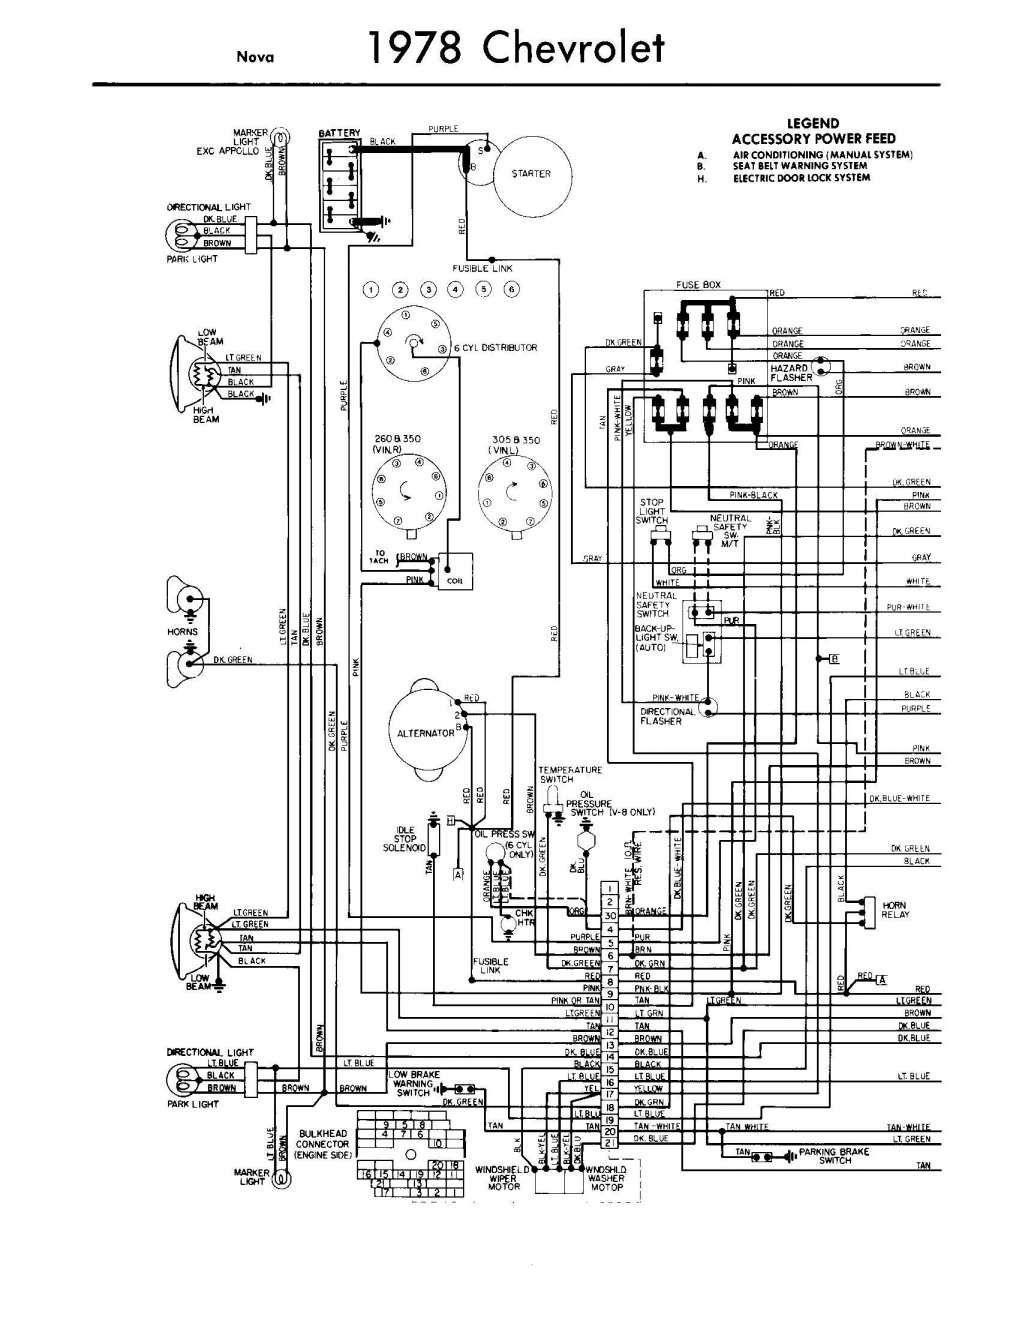 10+ 1979 Chevy Truck Engine Diagram | Chevy trucks, 1985 chevy truck, 1979  chevy truck | 1979 V8 Ford Engine Diagram |  | Pinterest